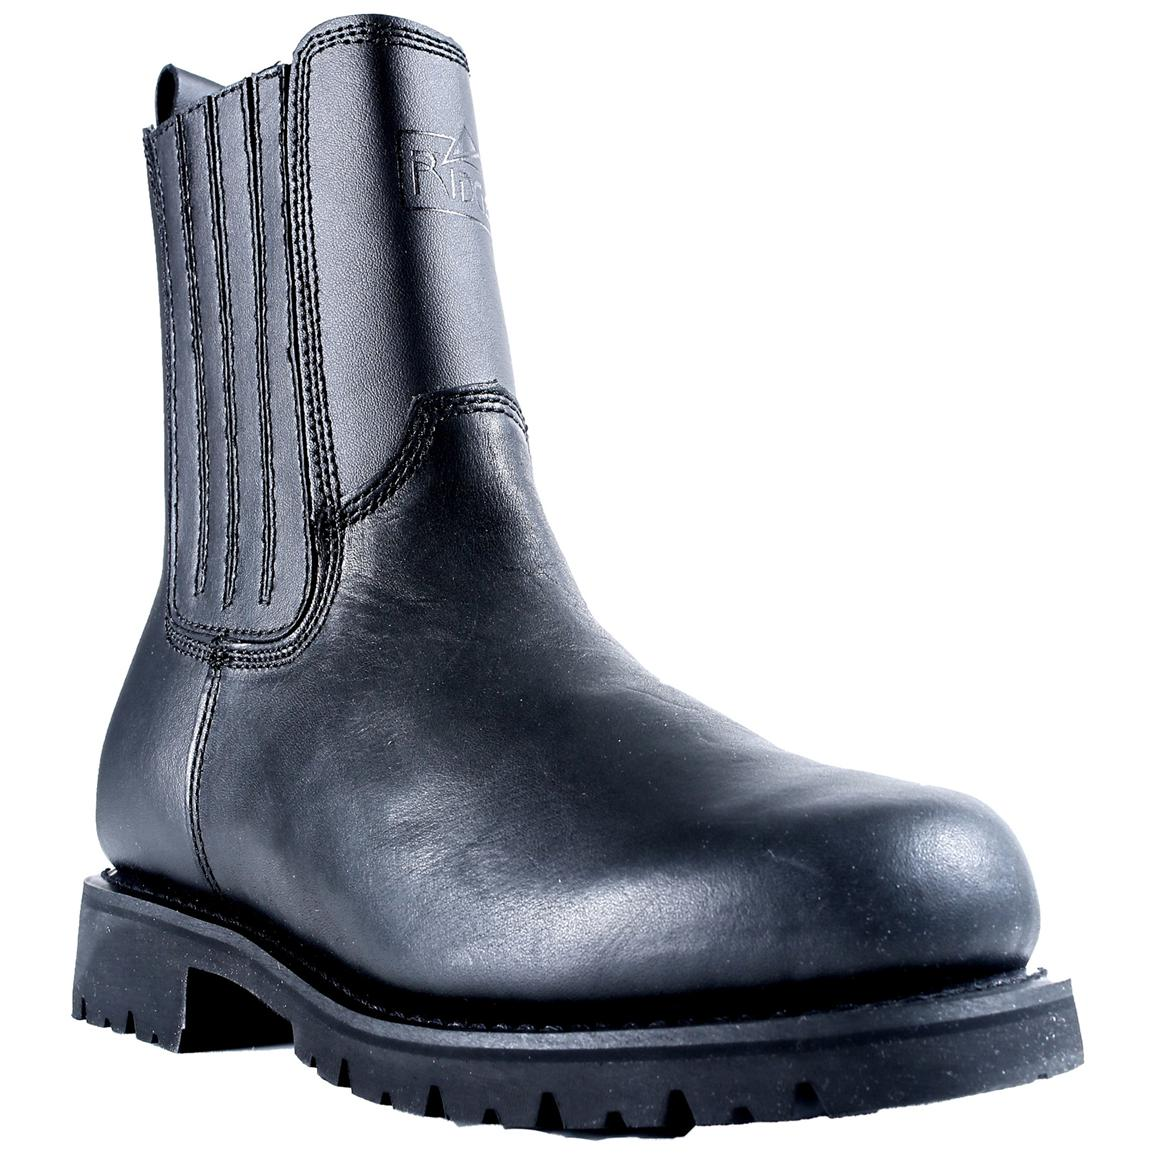 Mens Boots With Zipper olgK1nXH